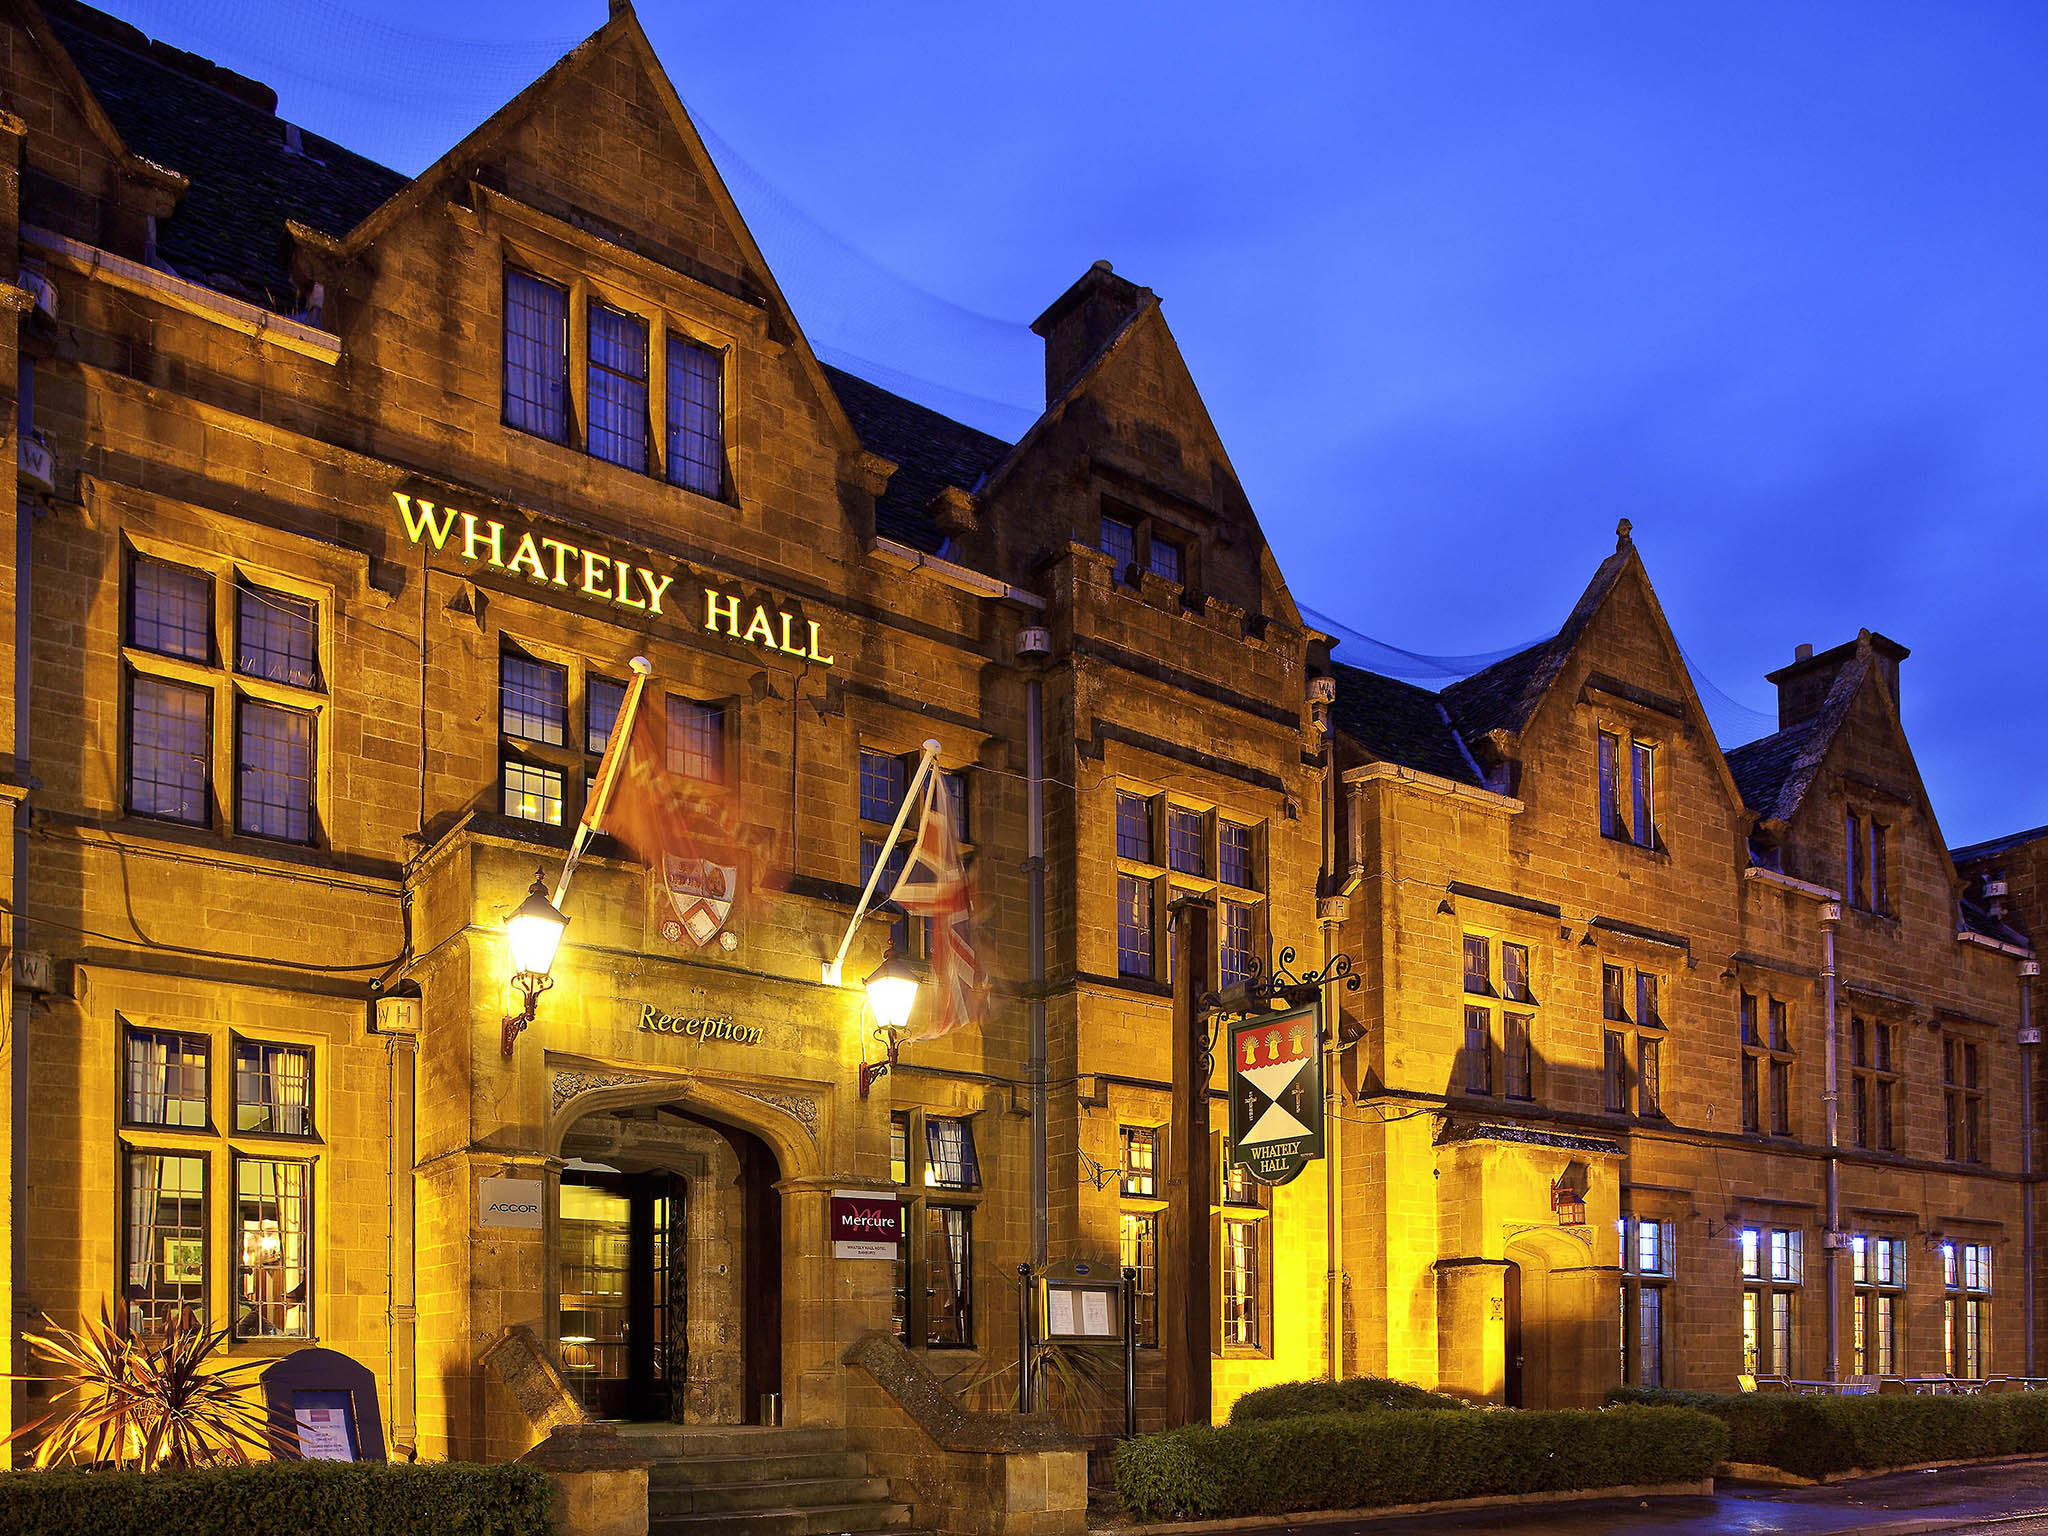 Hotel - Mercure Banbury Whately Hall Hotel